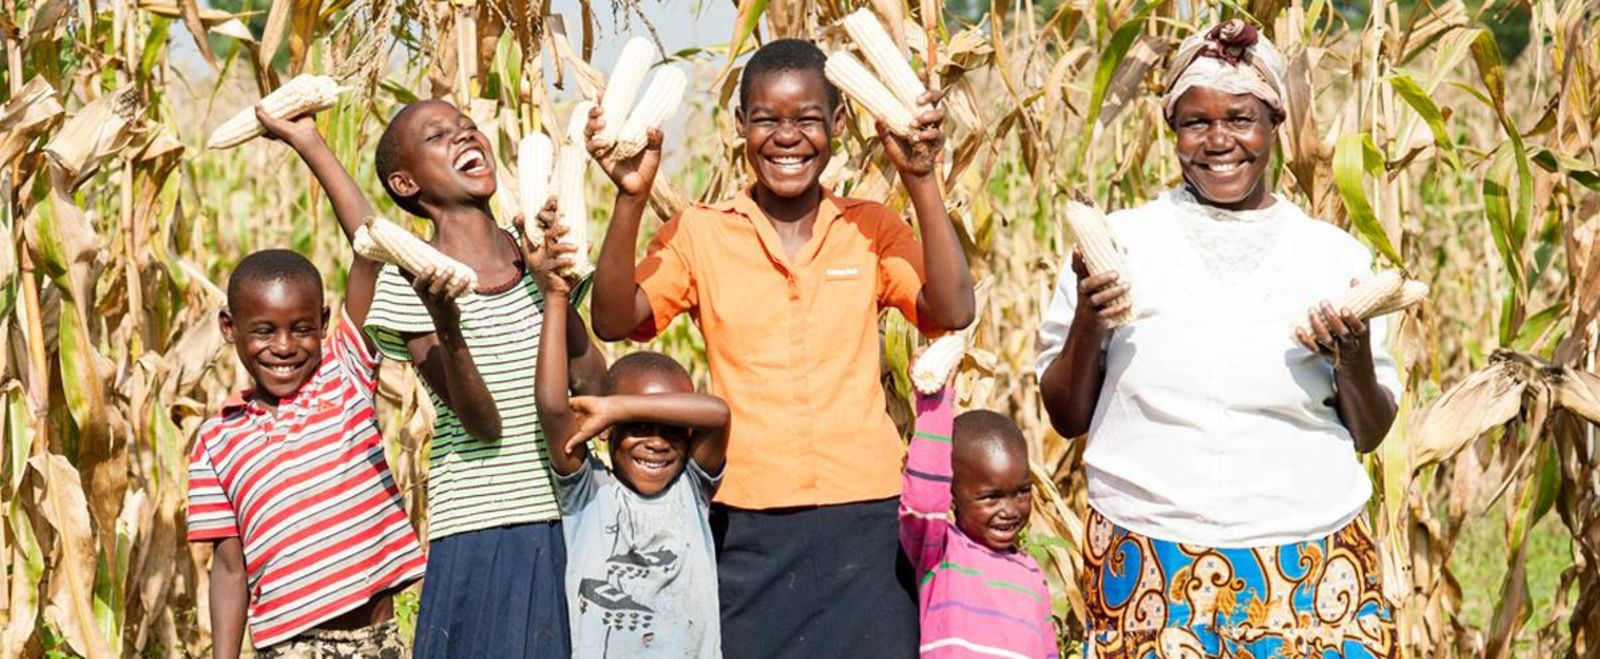 A family smiles and holds up husks of corn outside.